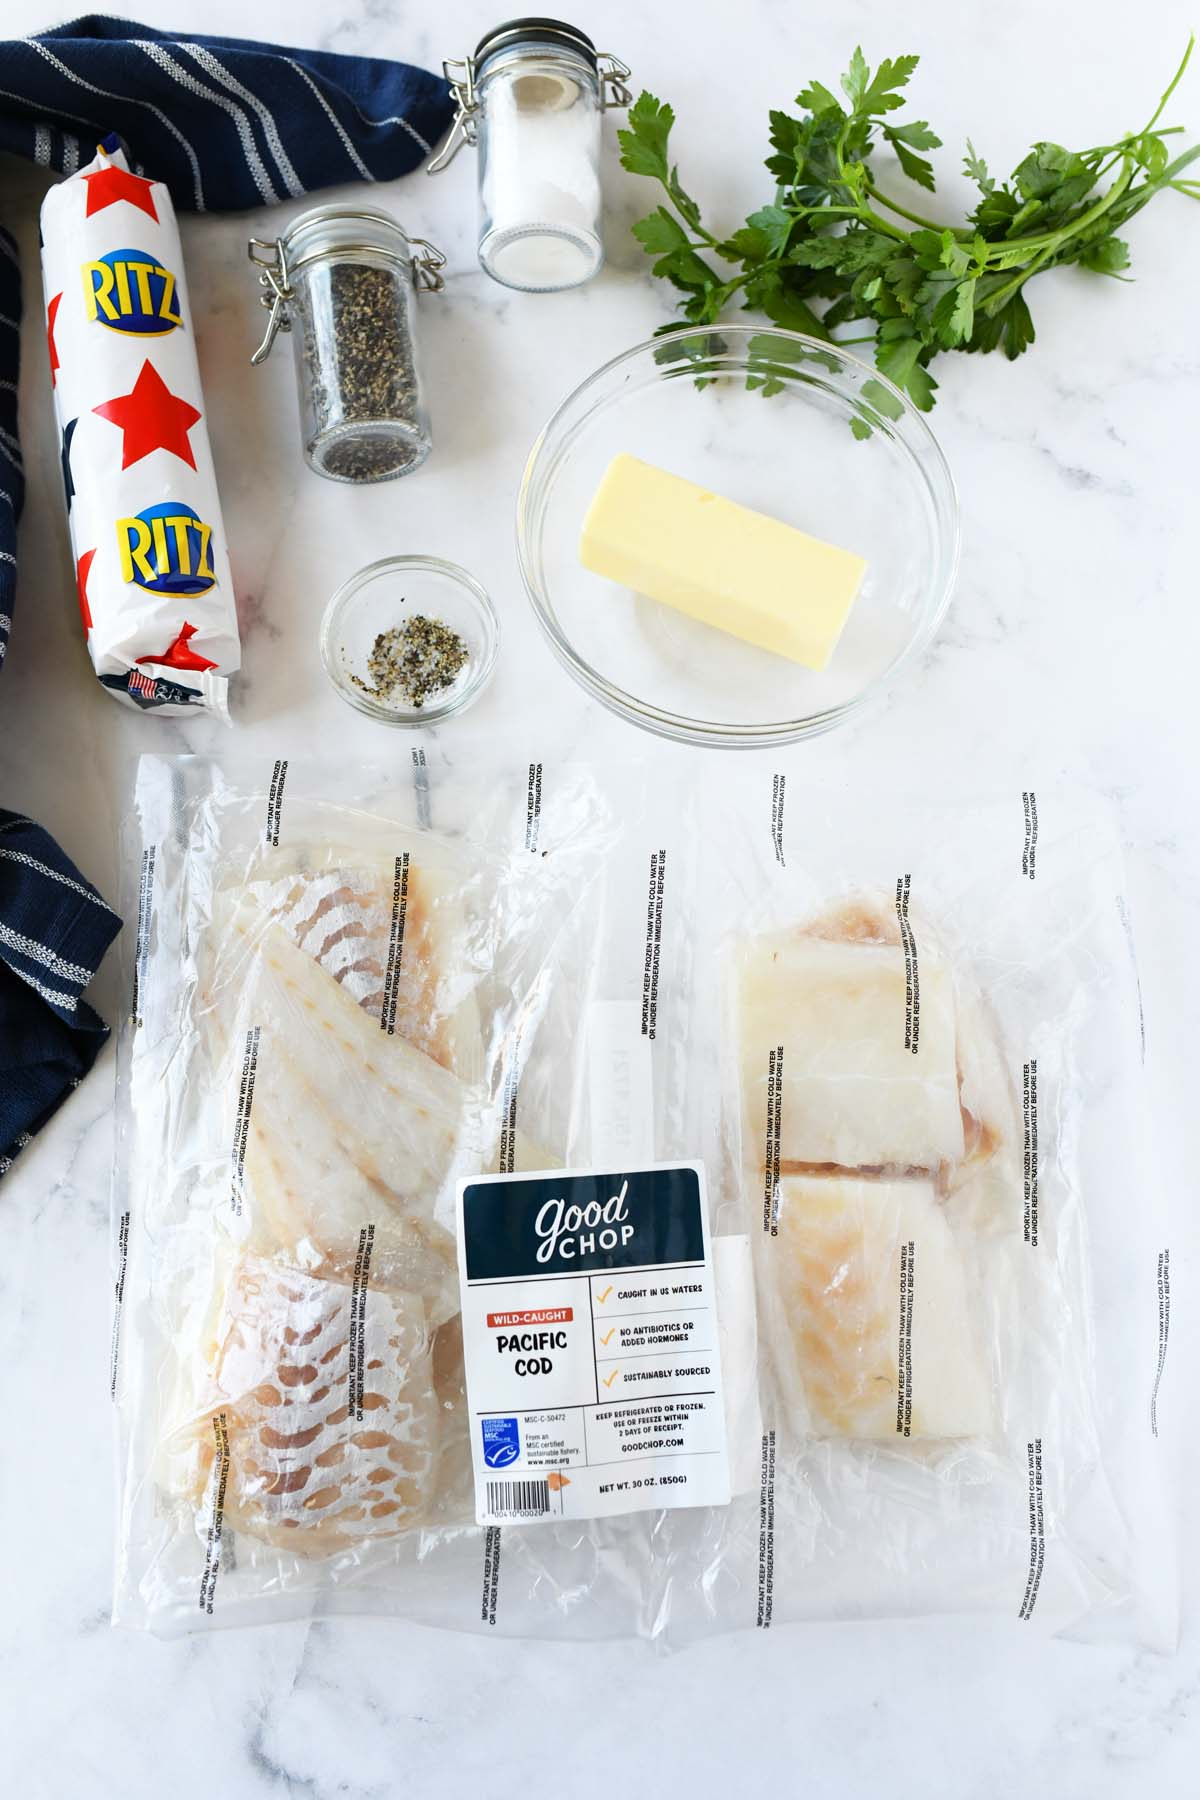 Good Chop Pacific Cod on a table with ingredients.